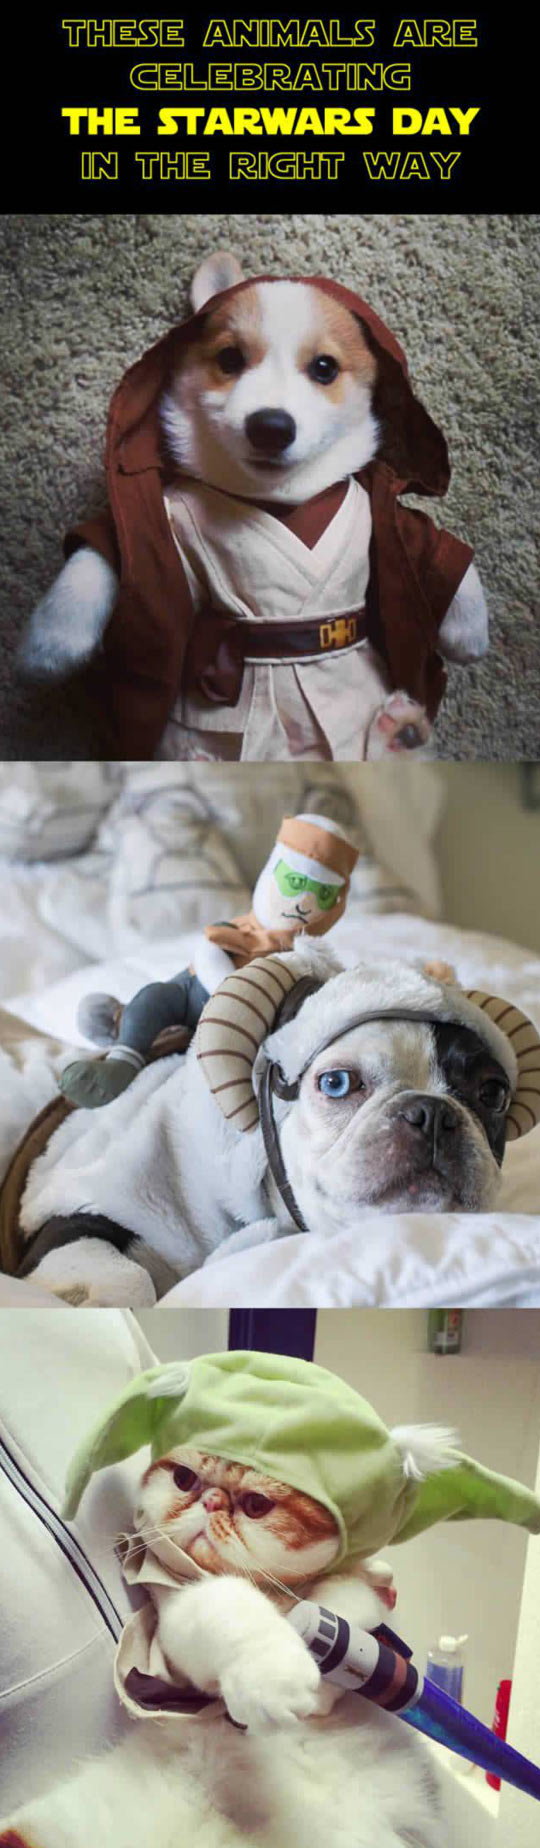 funny-pets-dressed-Star-Wars-costume